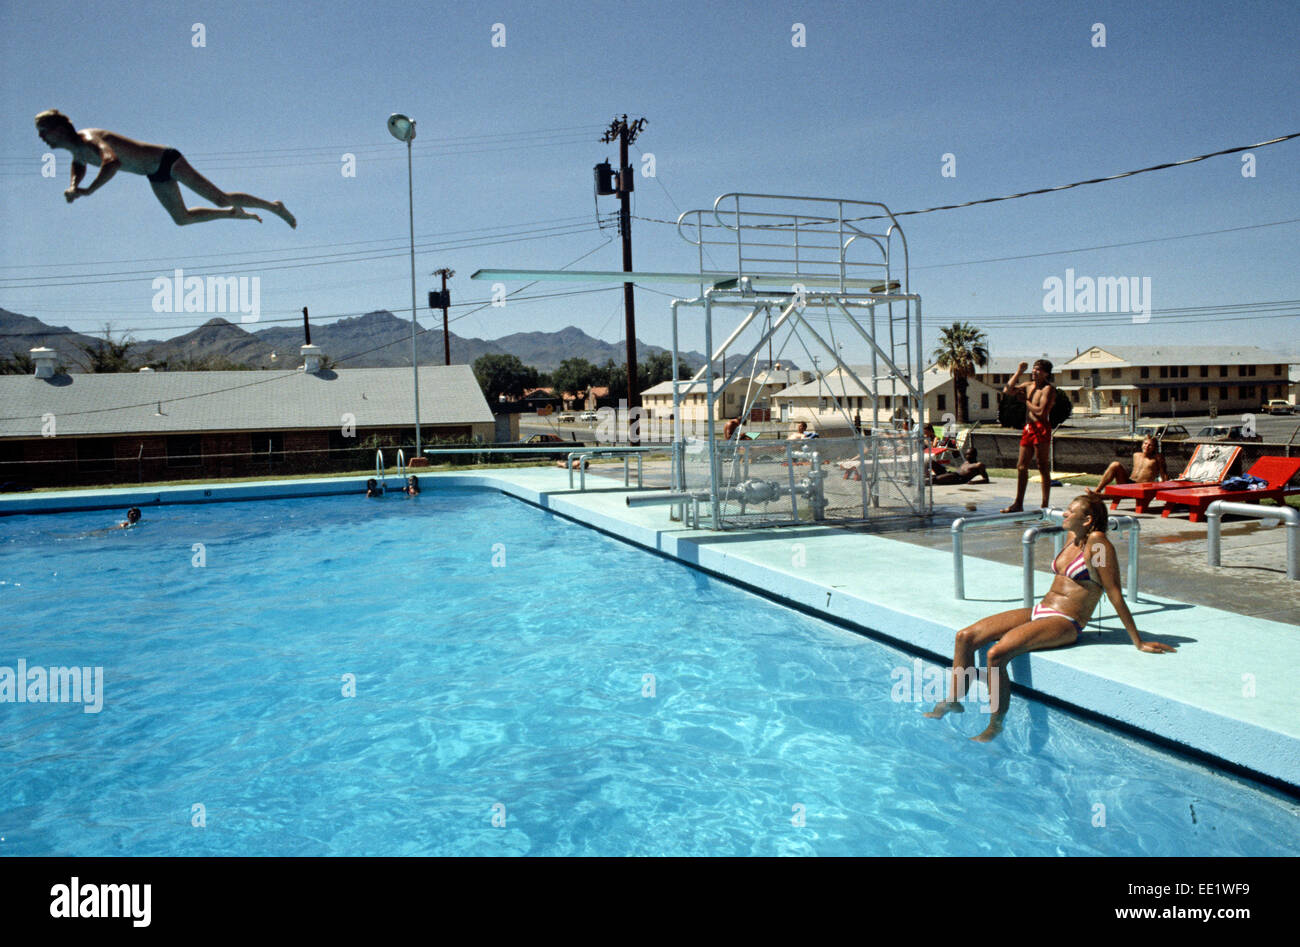 pershing swimming pool fort bliss united states army texas usa stock photo 77488637 alamy